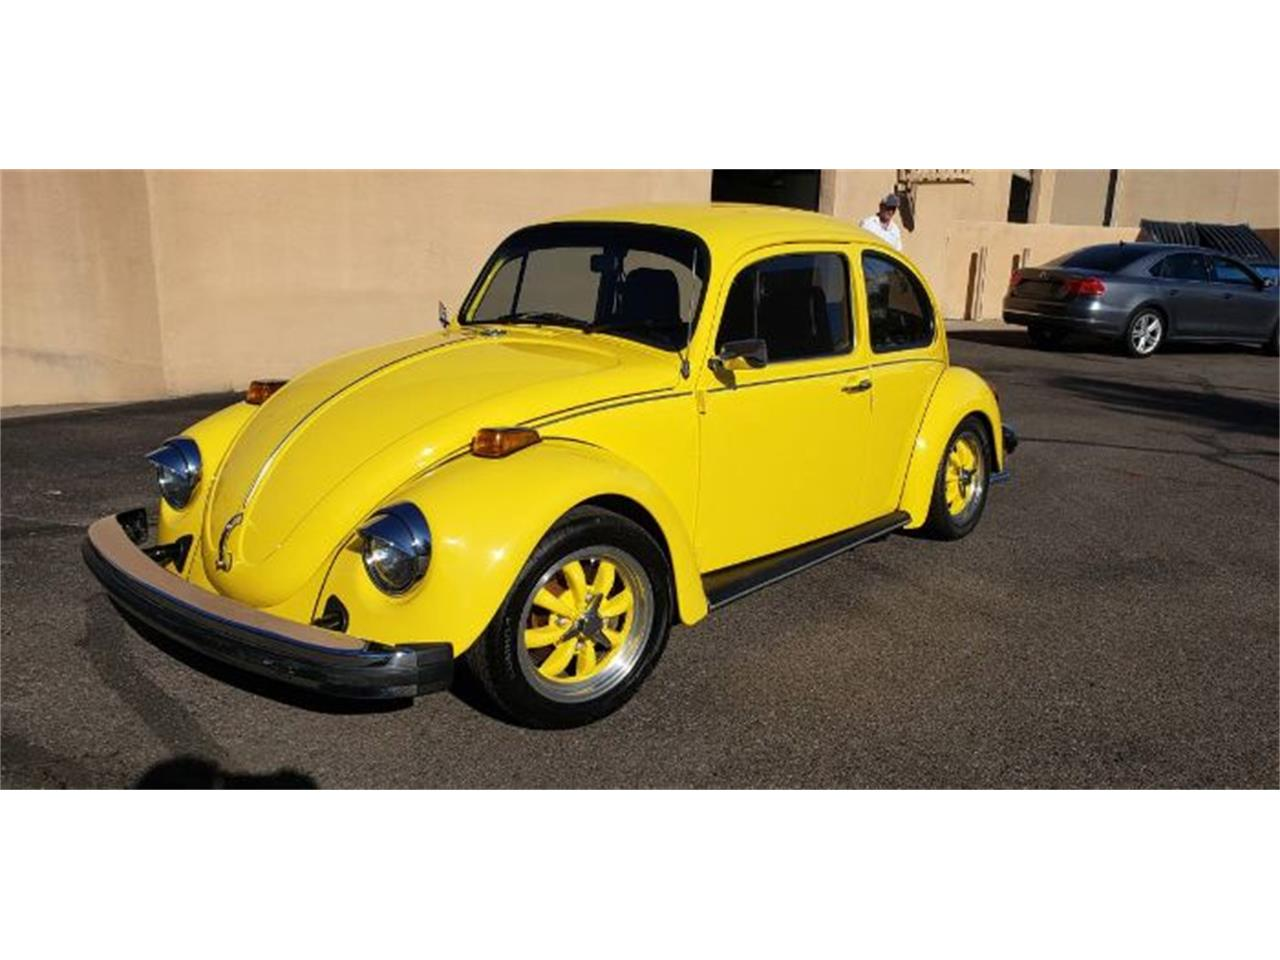 for sale 1974 volkswagen beetle in cadillac, michigan cars - cadillac, mi at geebo